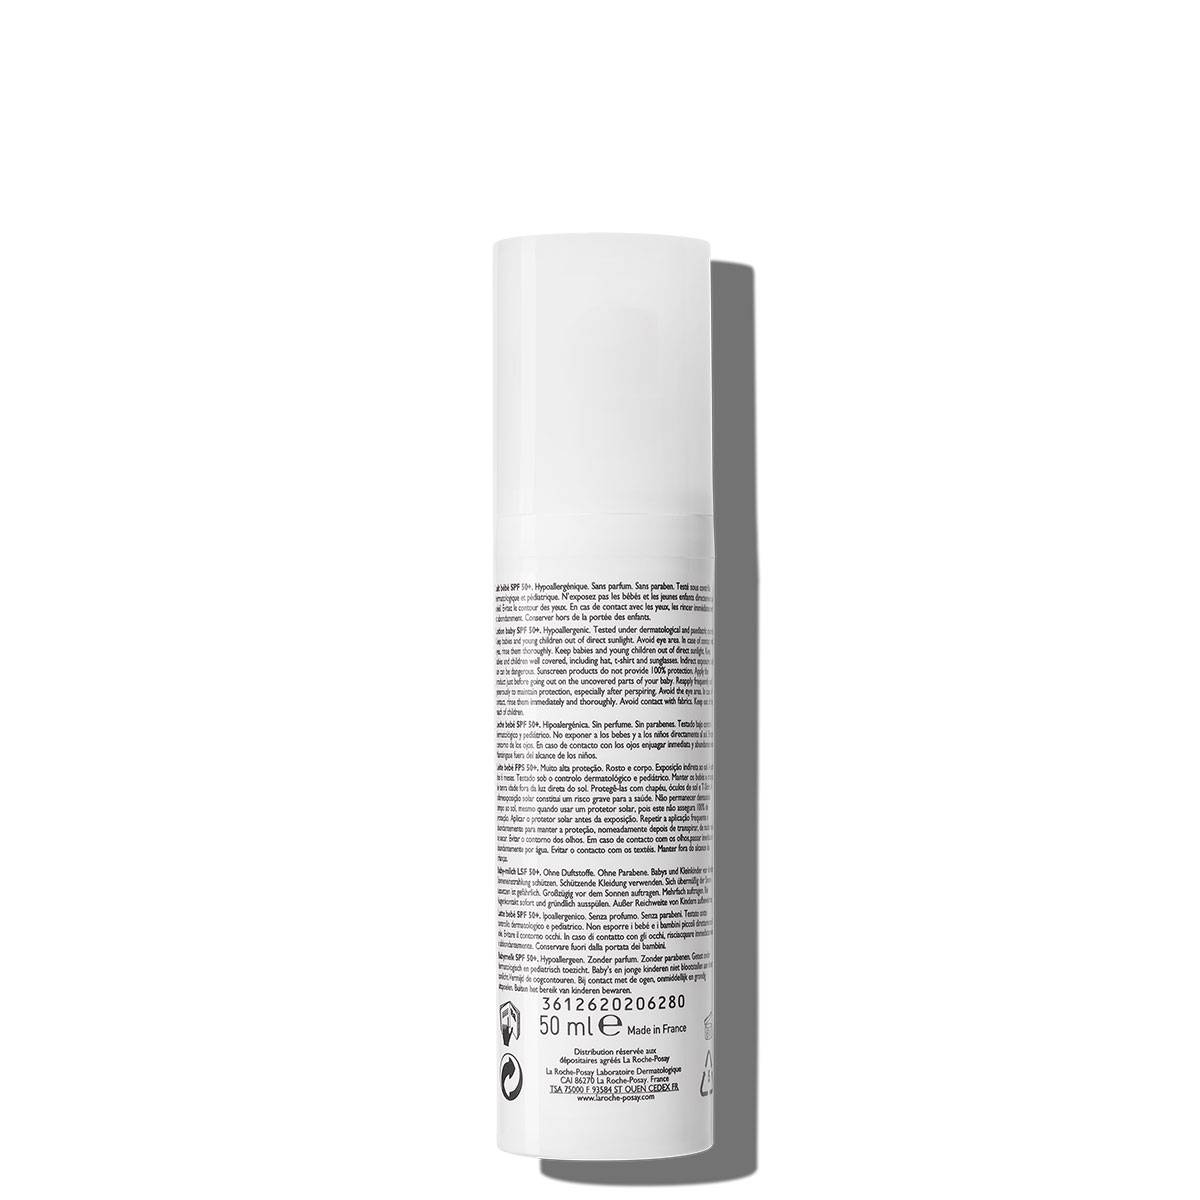 La Roche Posay ProductPage Sun Anthelios Dermo Pediatrics Spf50 50ml 3